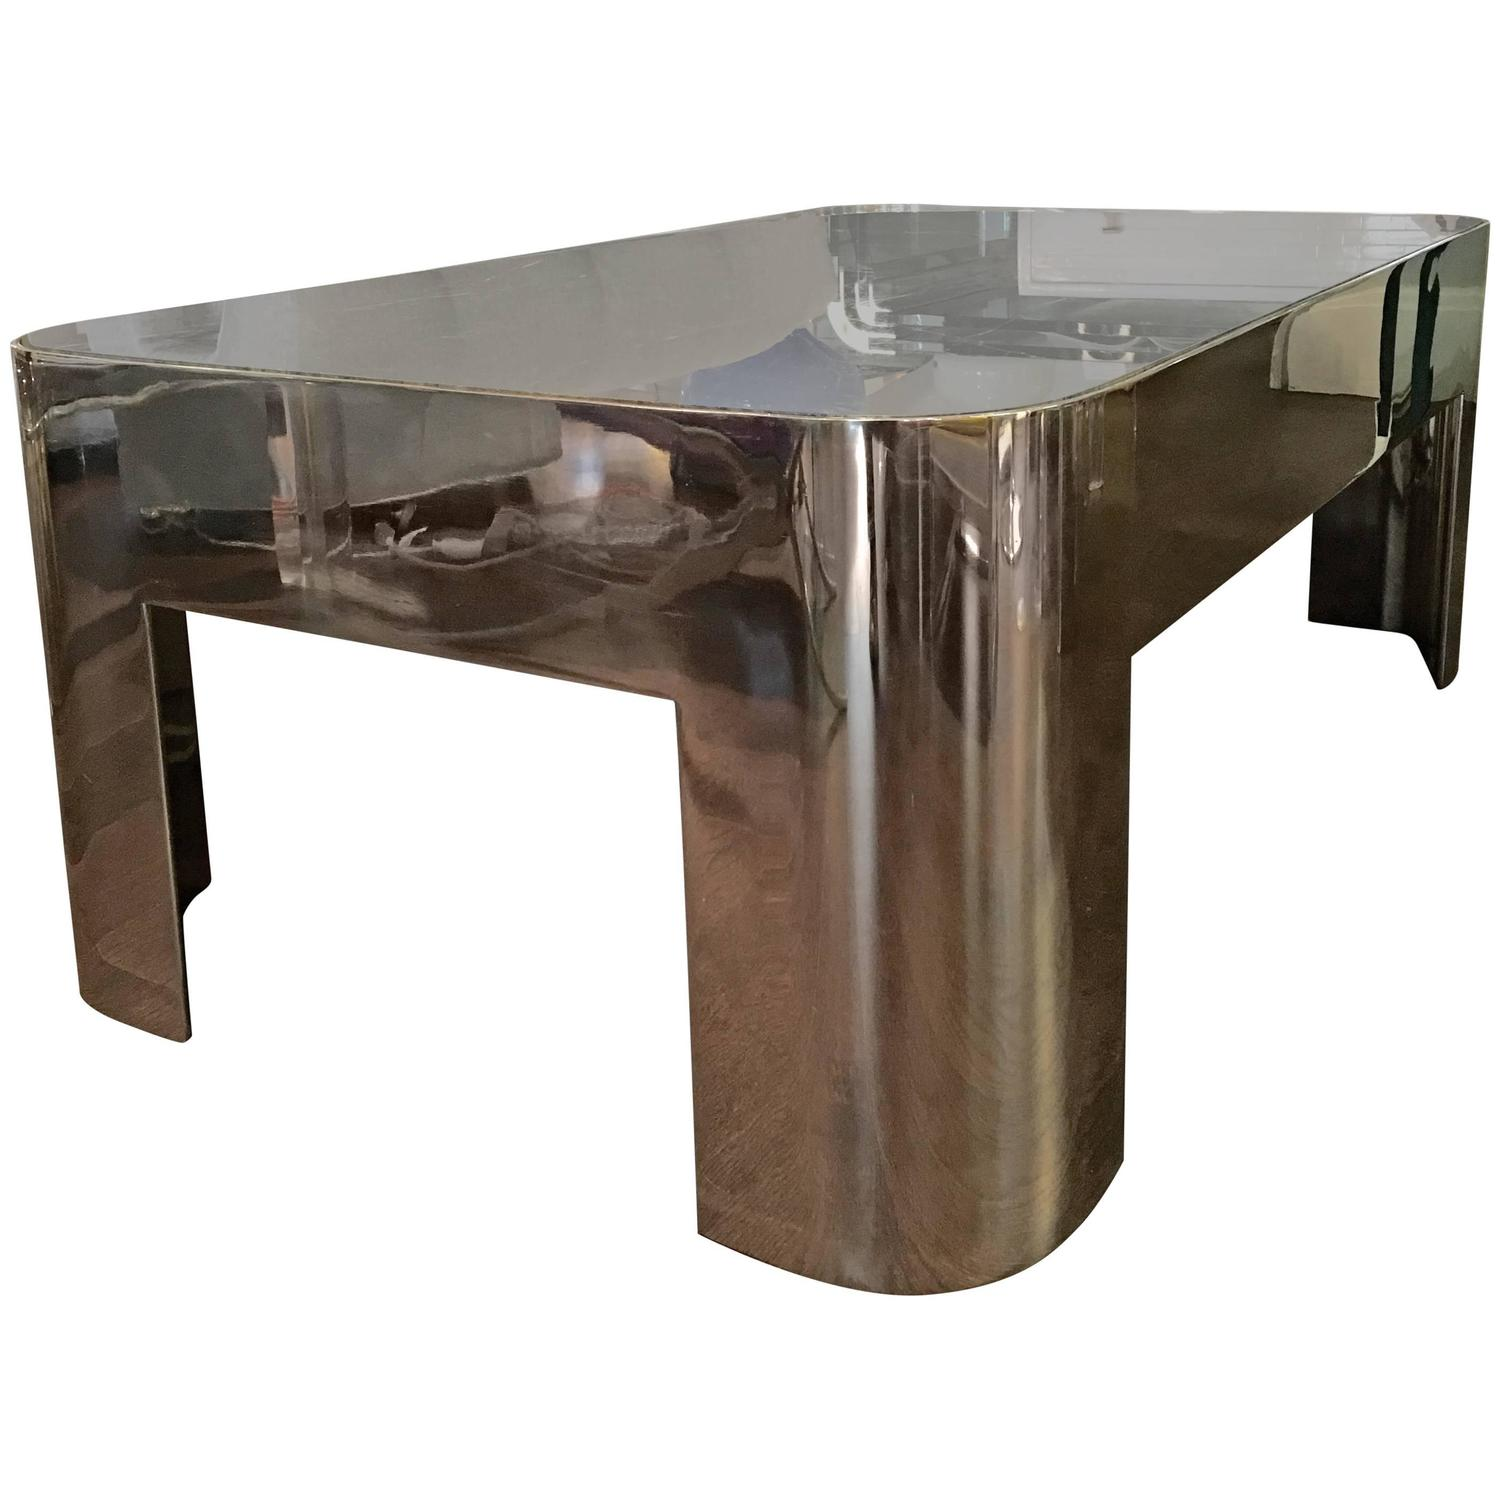 Prices For Marble Top Coffee Tables: Vintage Chrome And Marble-Top Coffee Table For Sale At 1stdibs